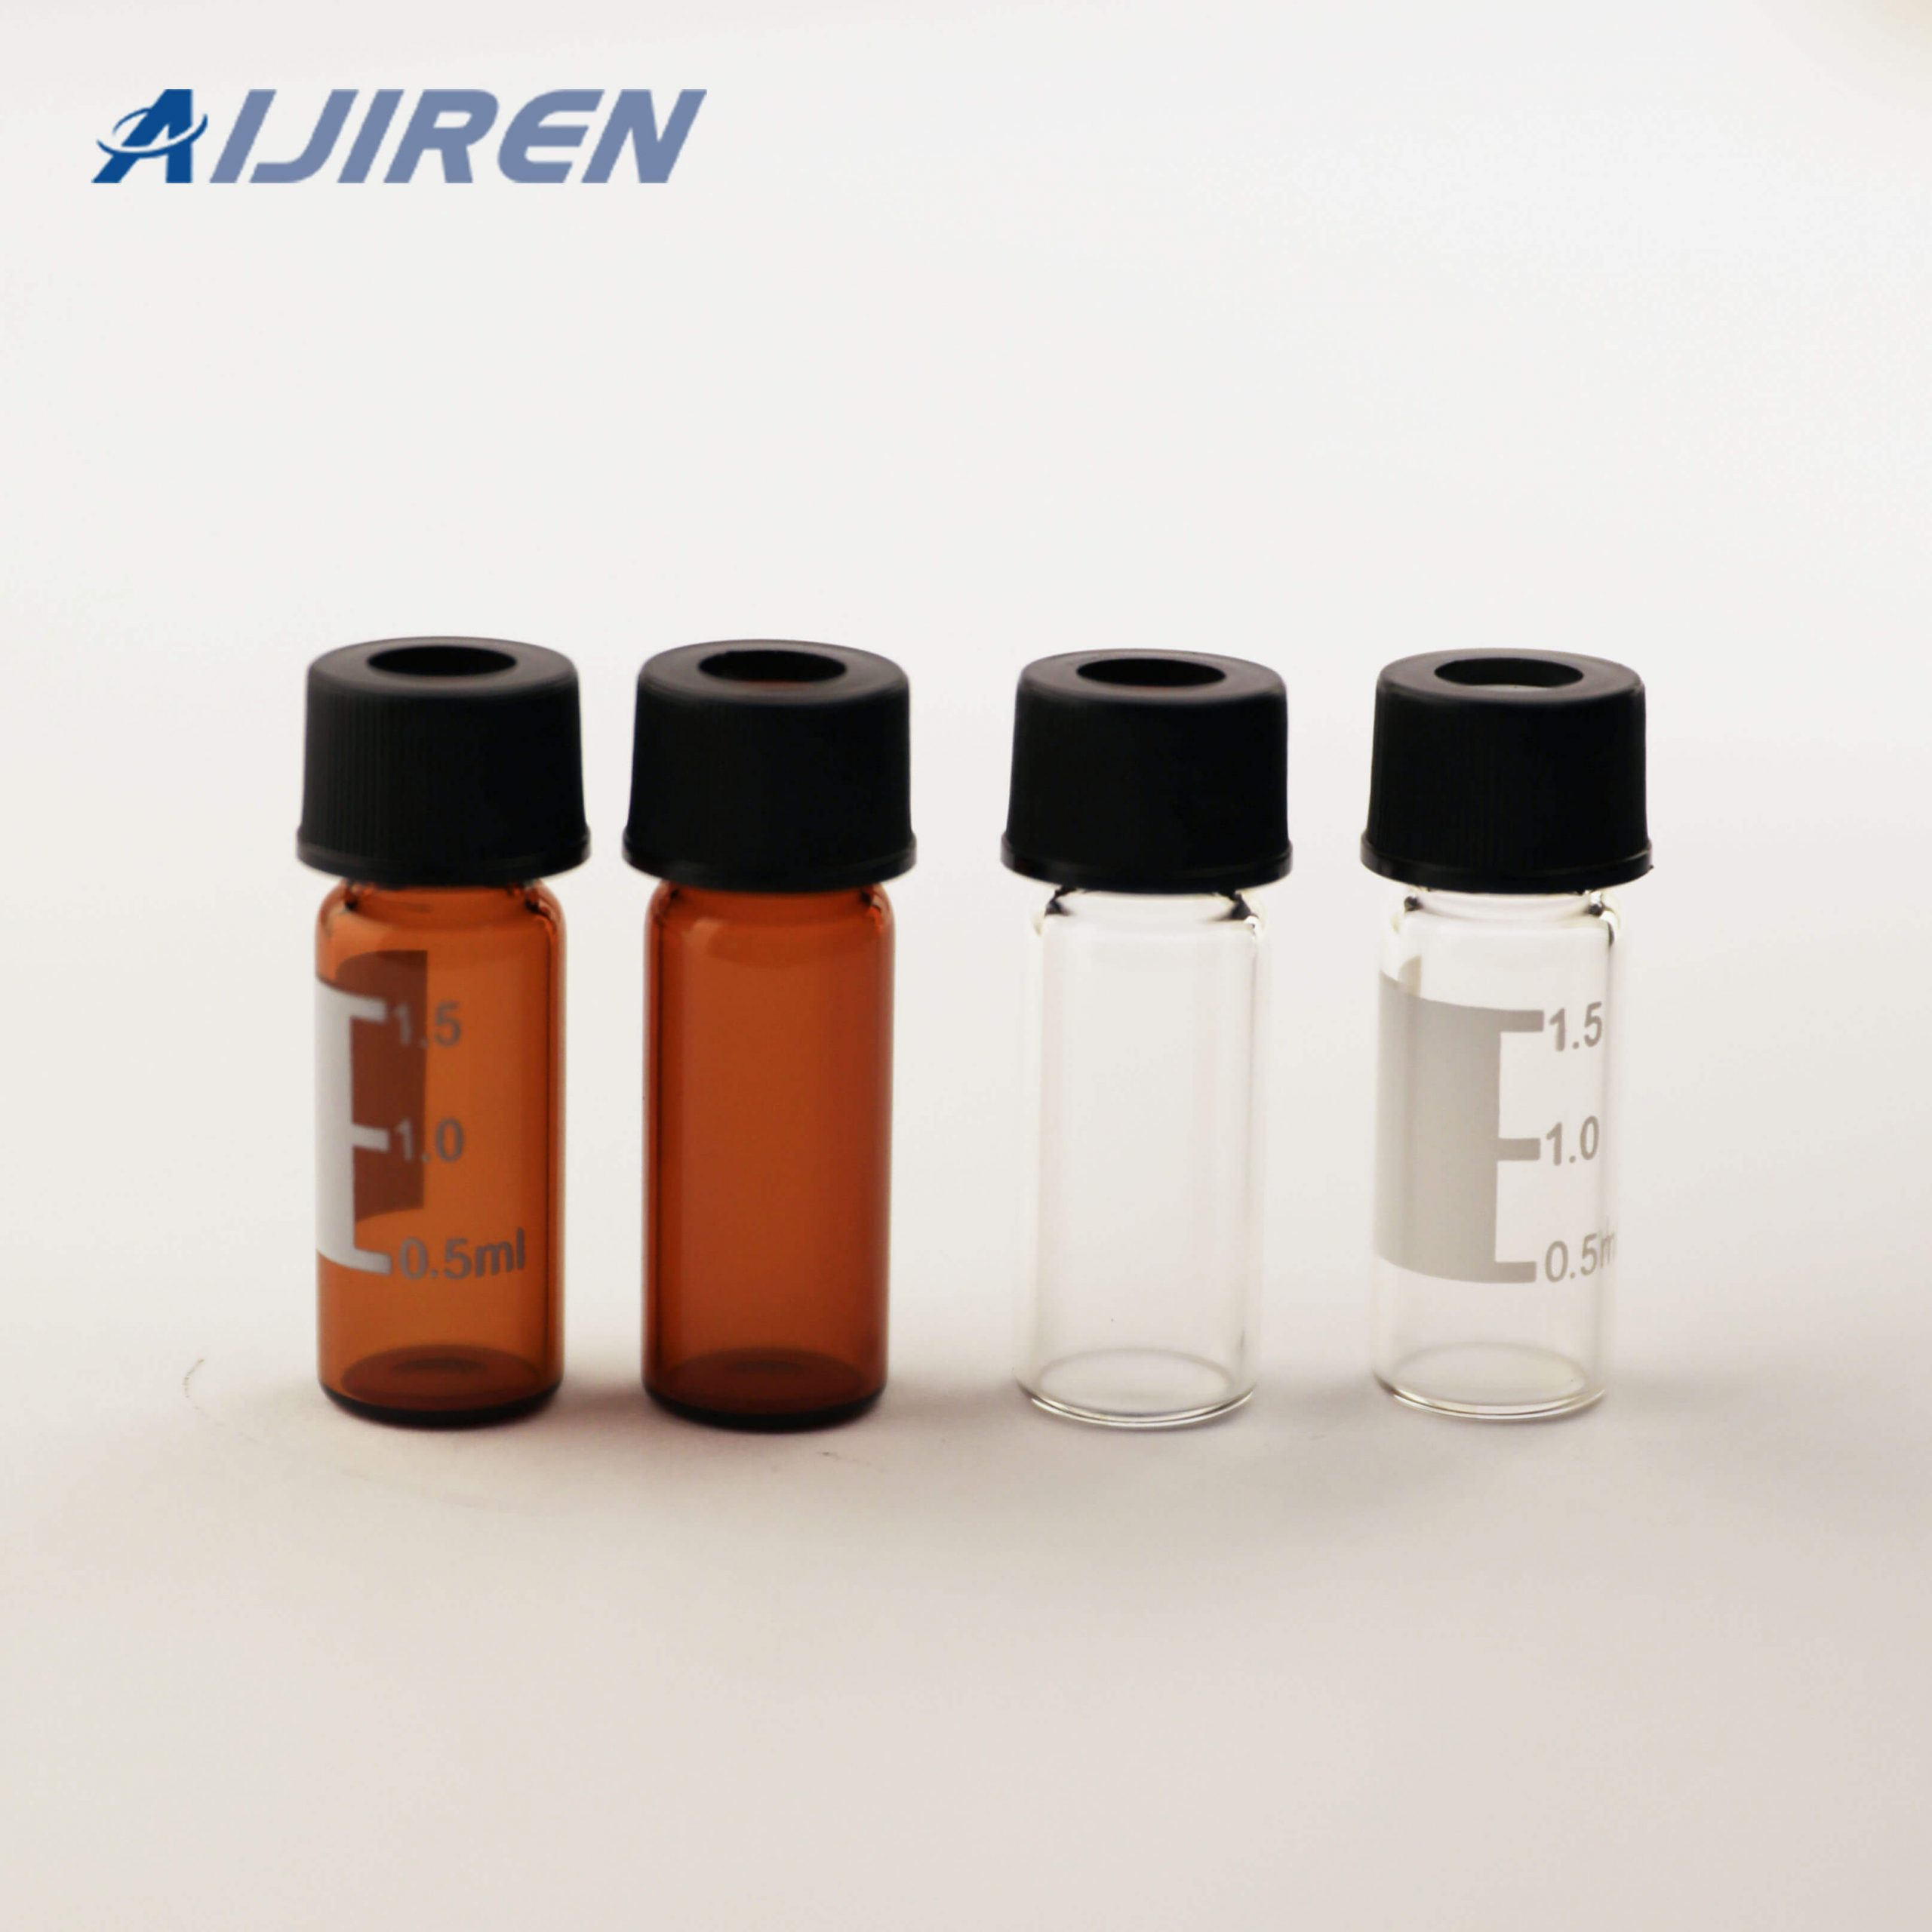 20ml headspace vial2ml Glass Vials with Screw Top from Aijiren